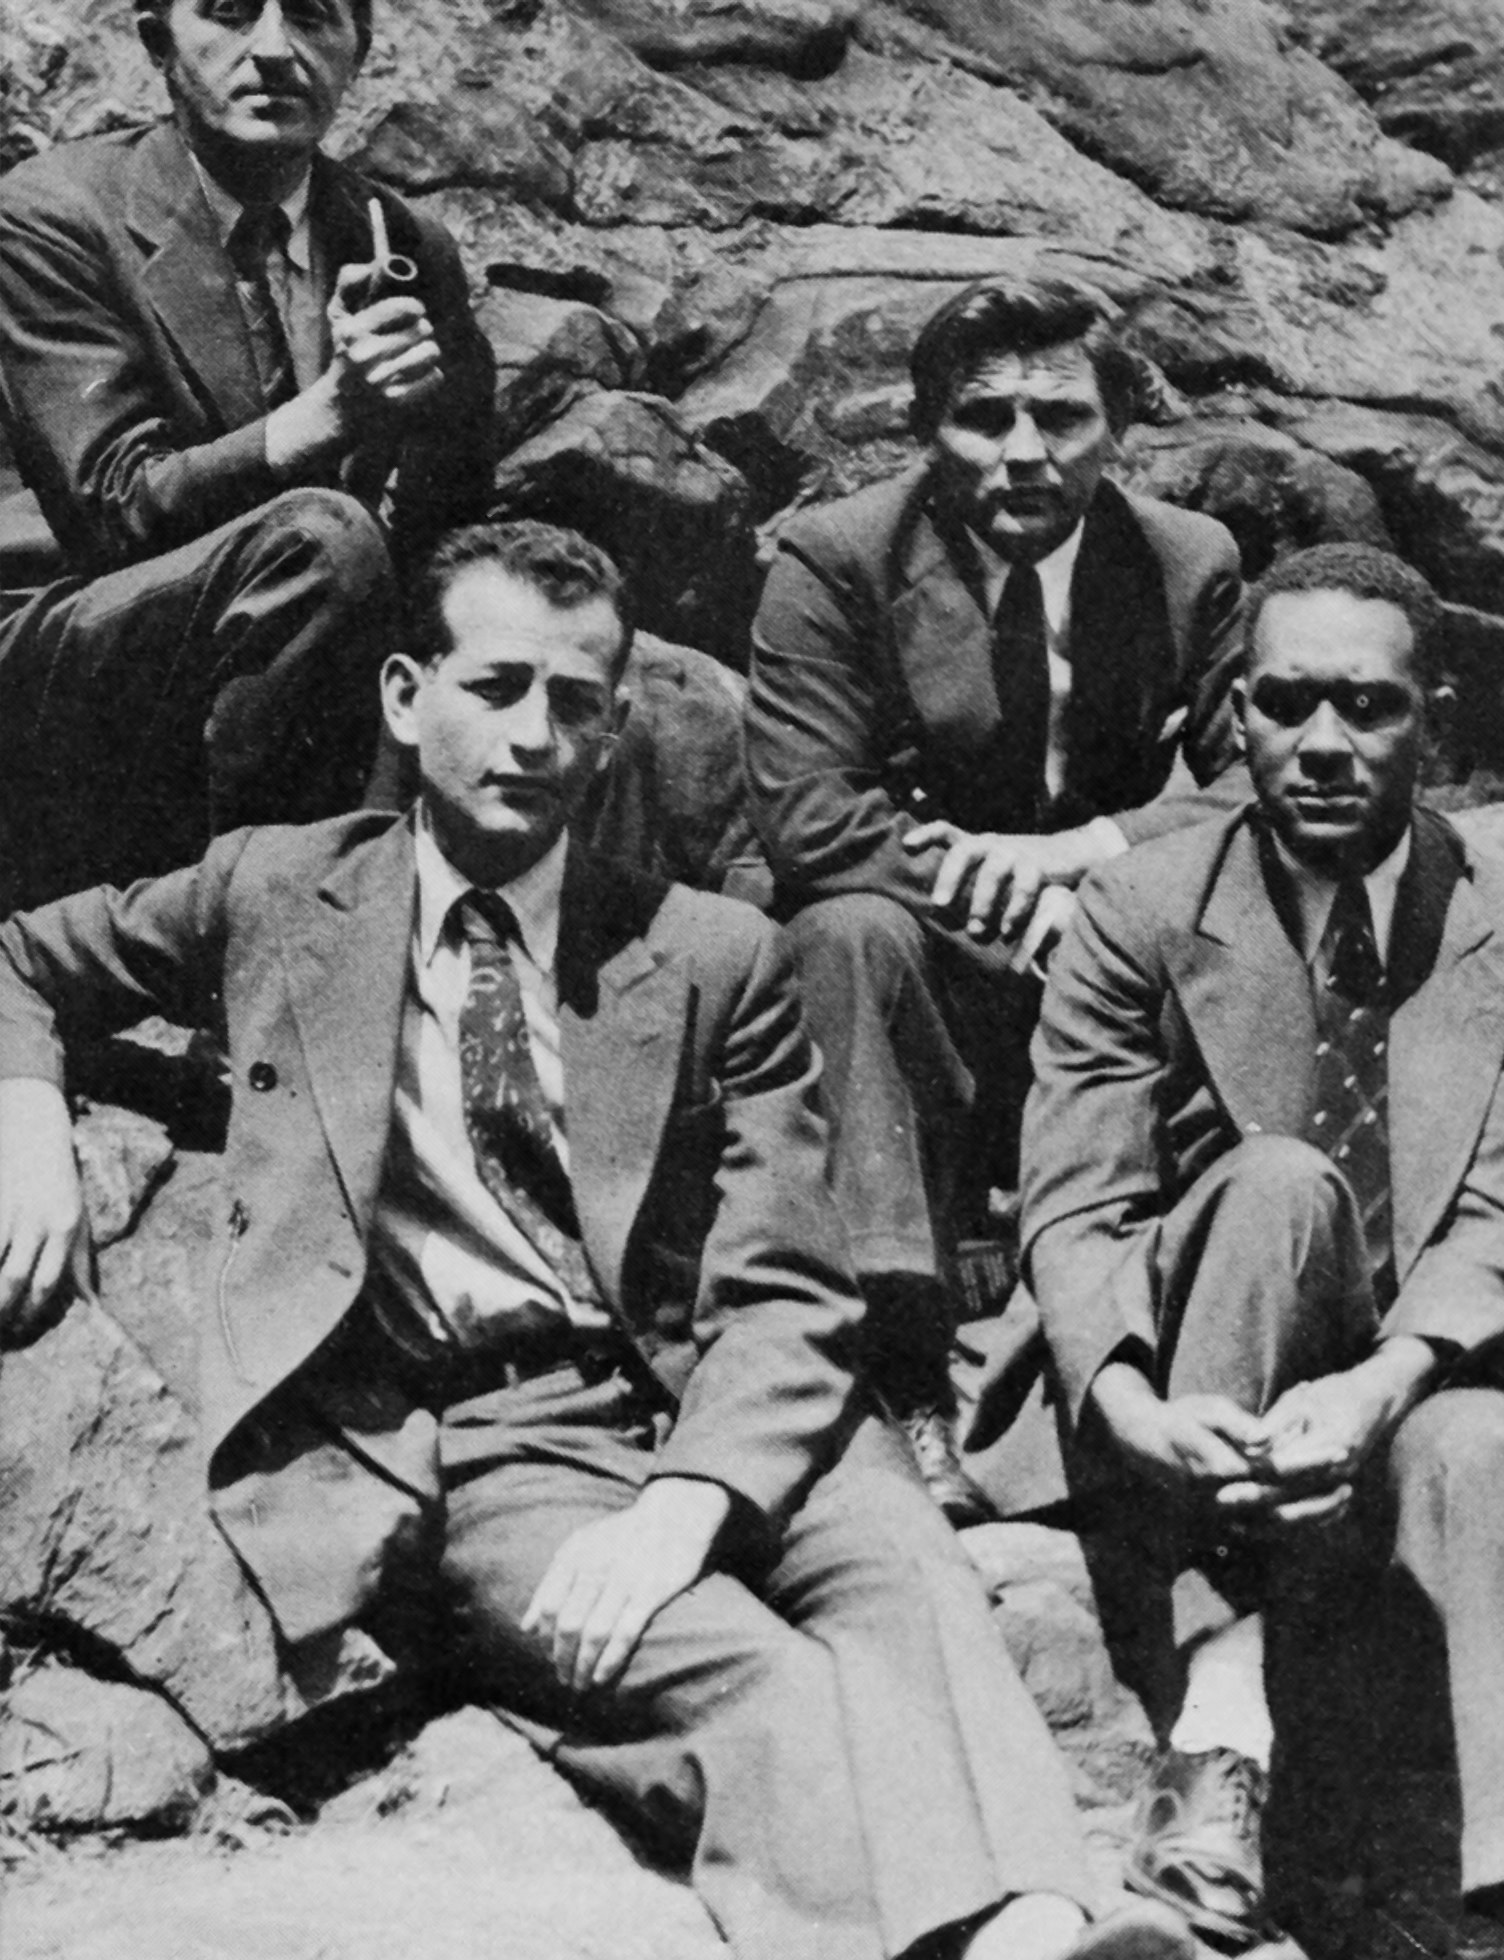 maxwell-bodenheim-top-left-and-friends-with-richard-wright-when-they-were-all-members-of-the-creative-writers-project-wpa-in-new-york-in-1938